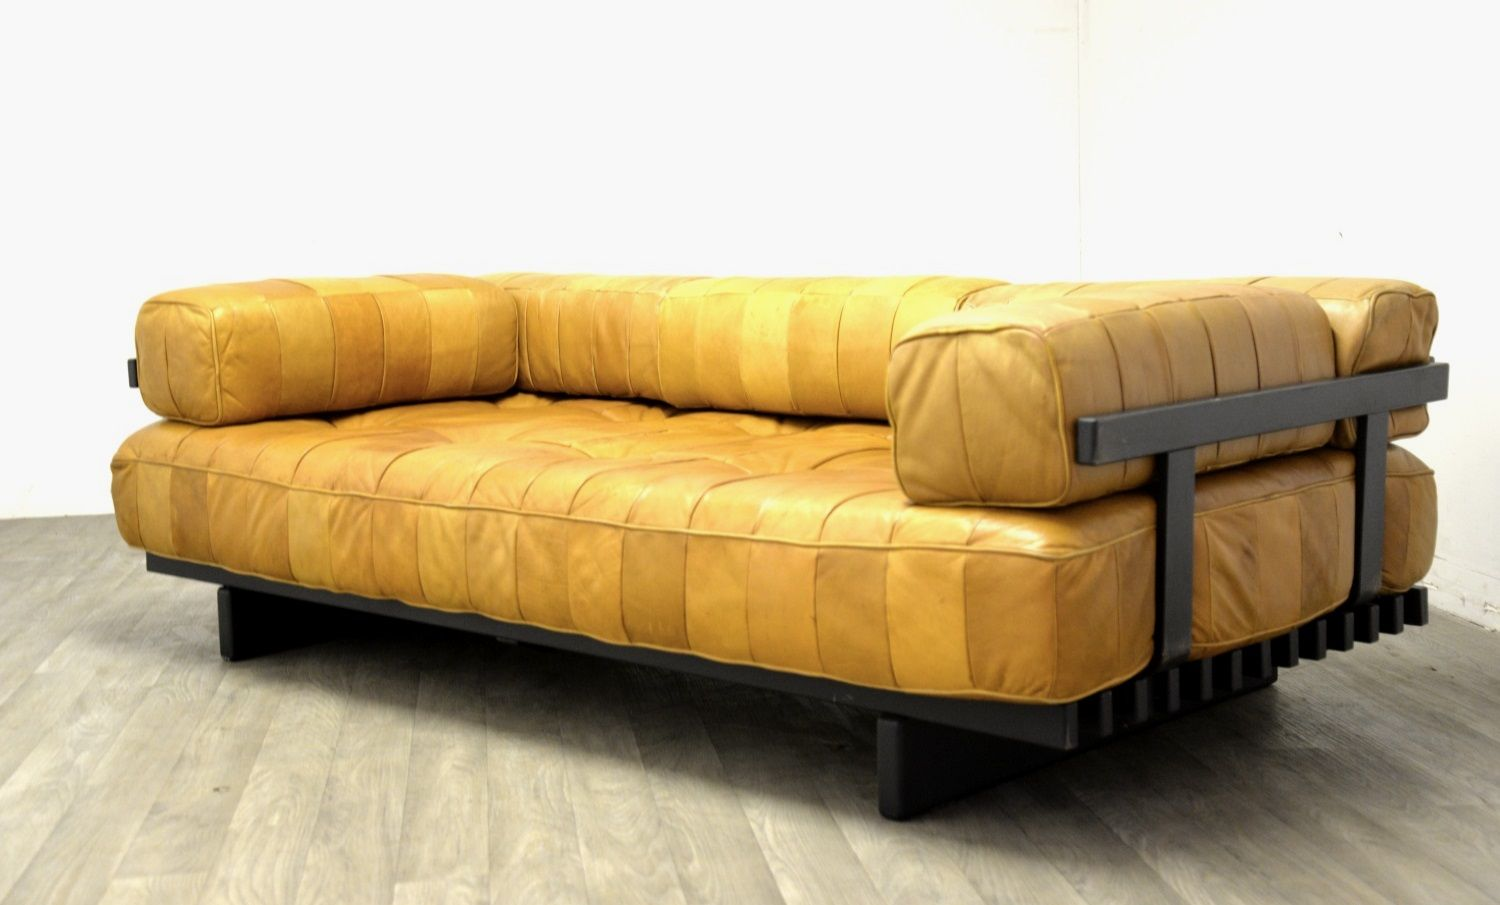 vintage ds 80 schlafsofa aus braunem leder von de sede 1960er bei pamono kaufen. Black Bedroom Furniture Sets. Home Design Ideas